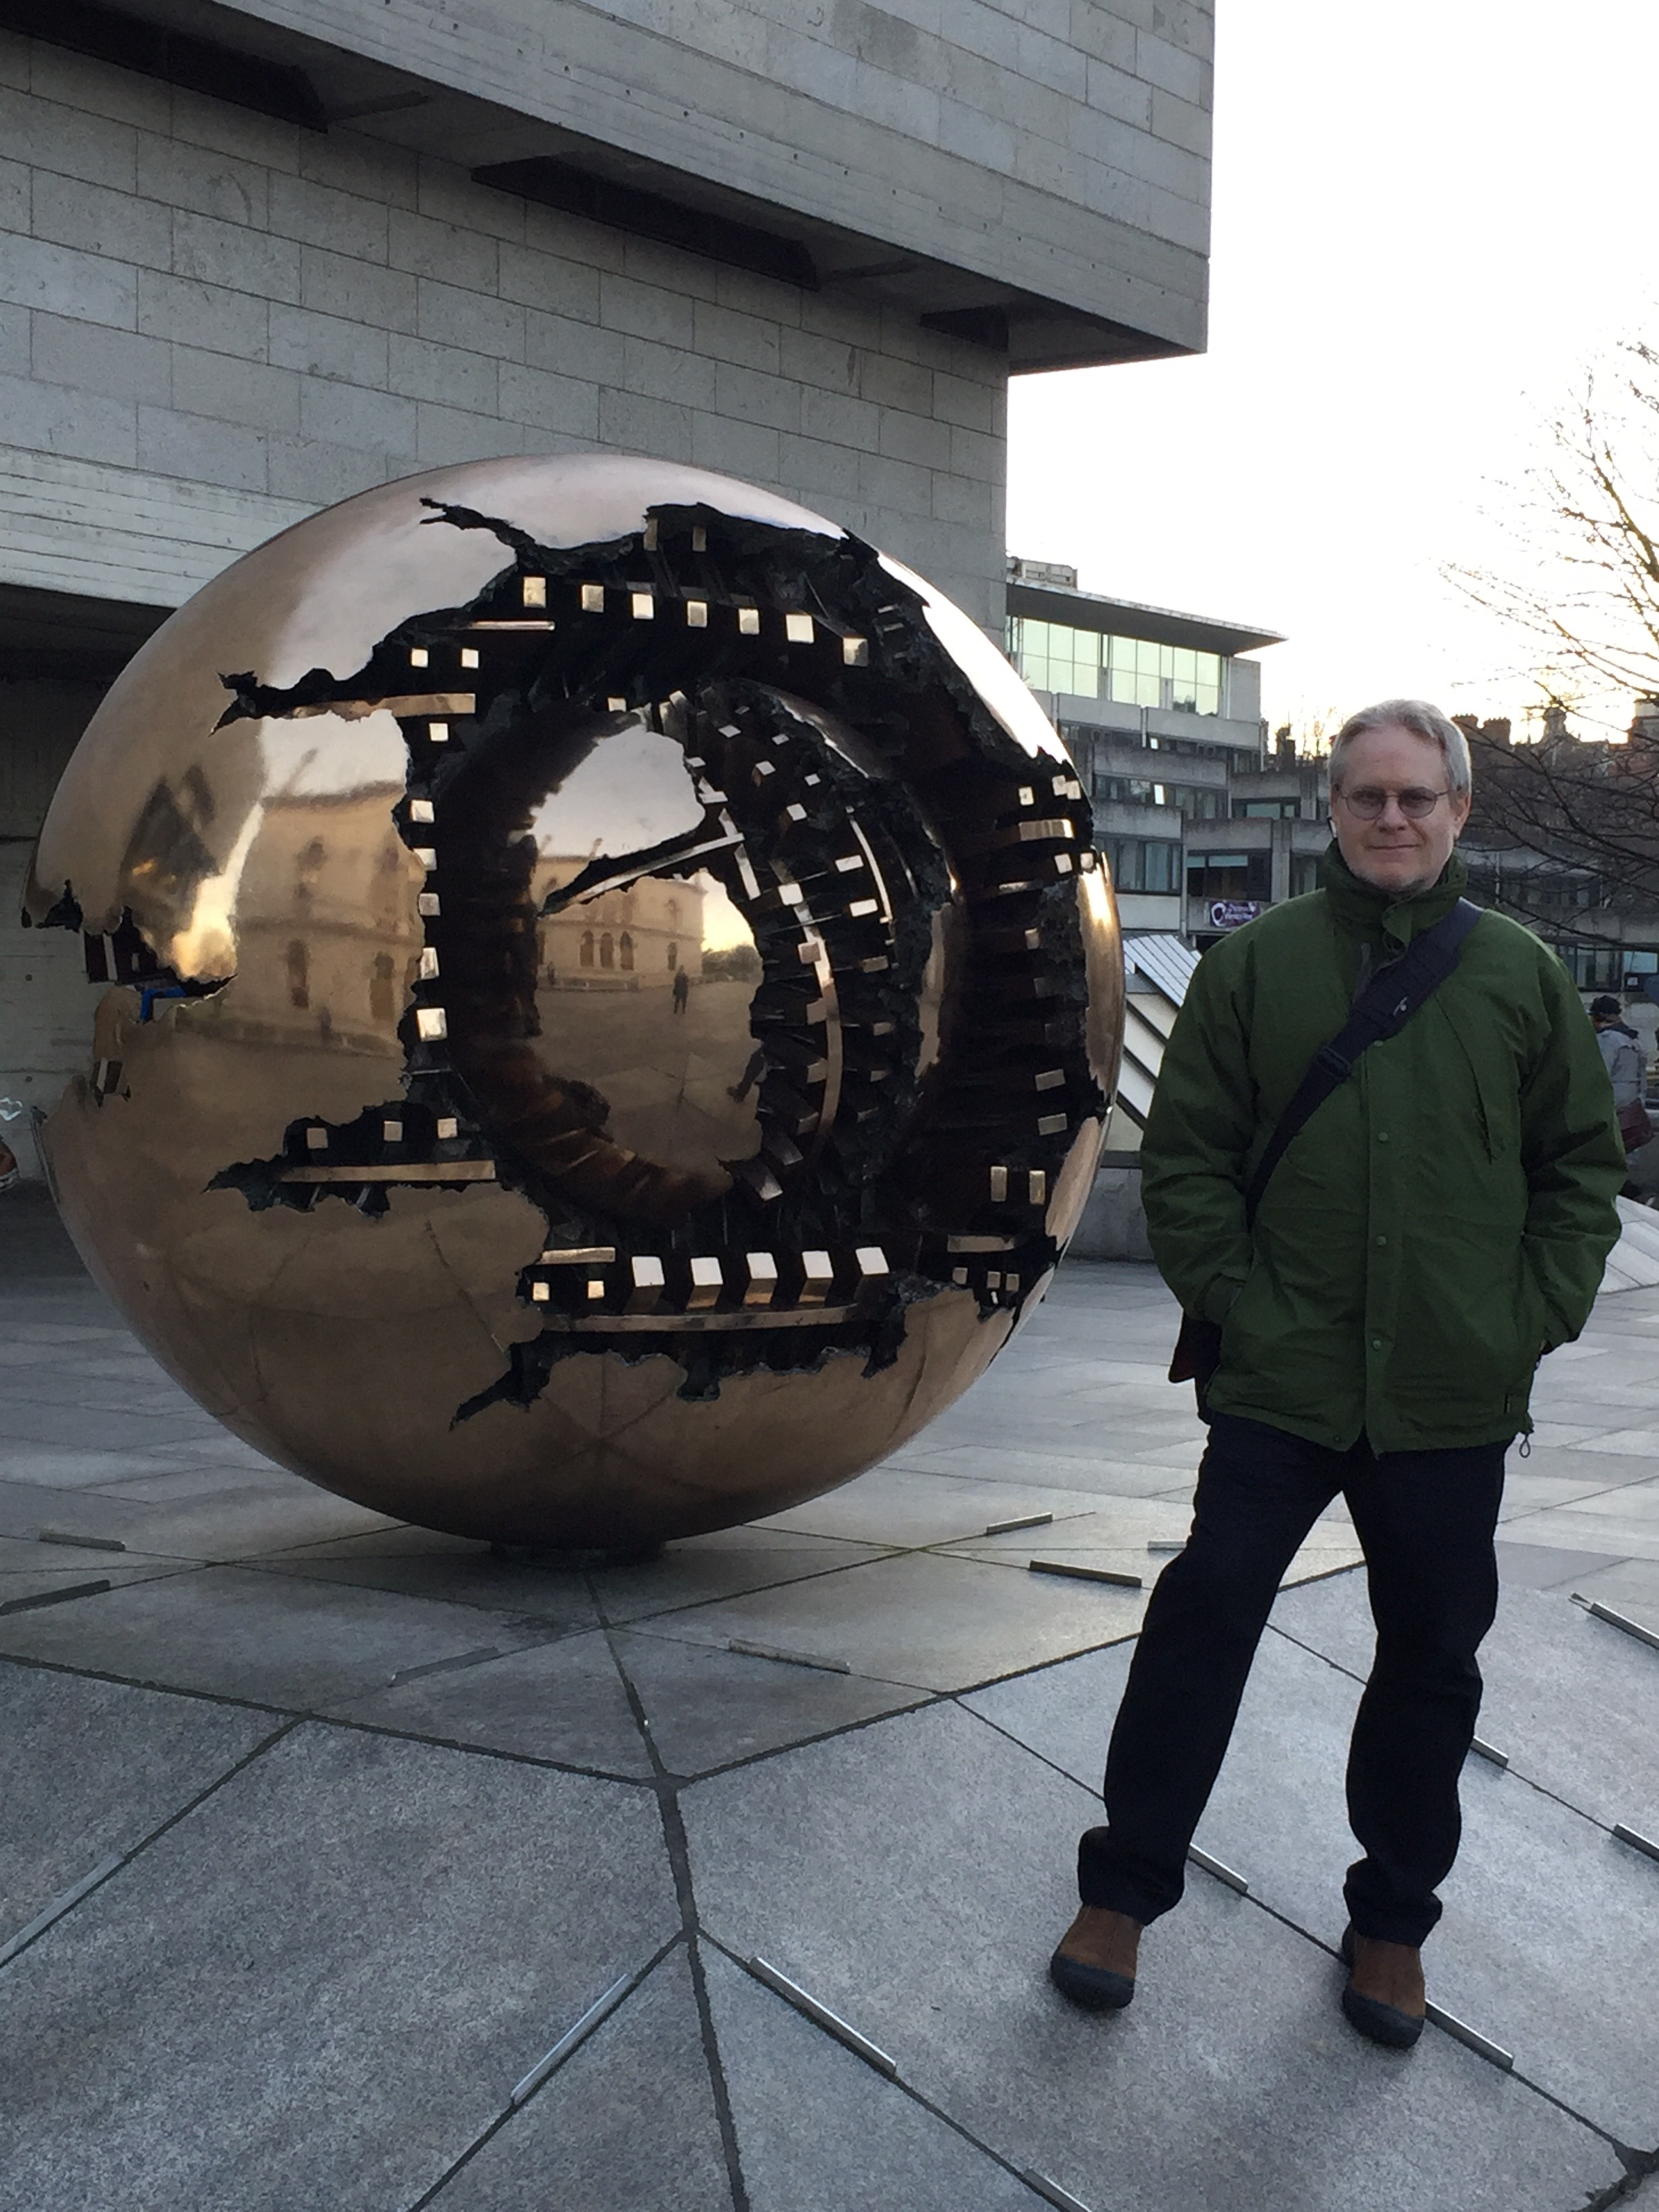 Trinity College, next to Pomodoro's sculpture,  Sphere Within Sphere